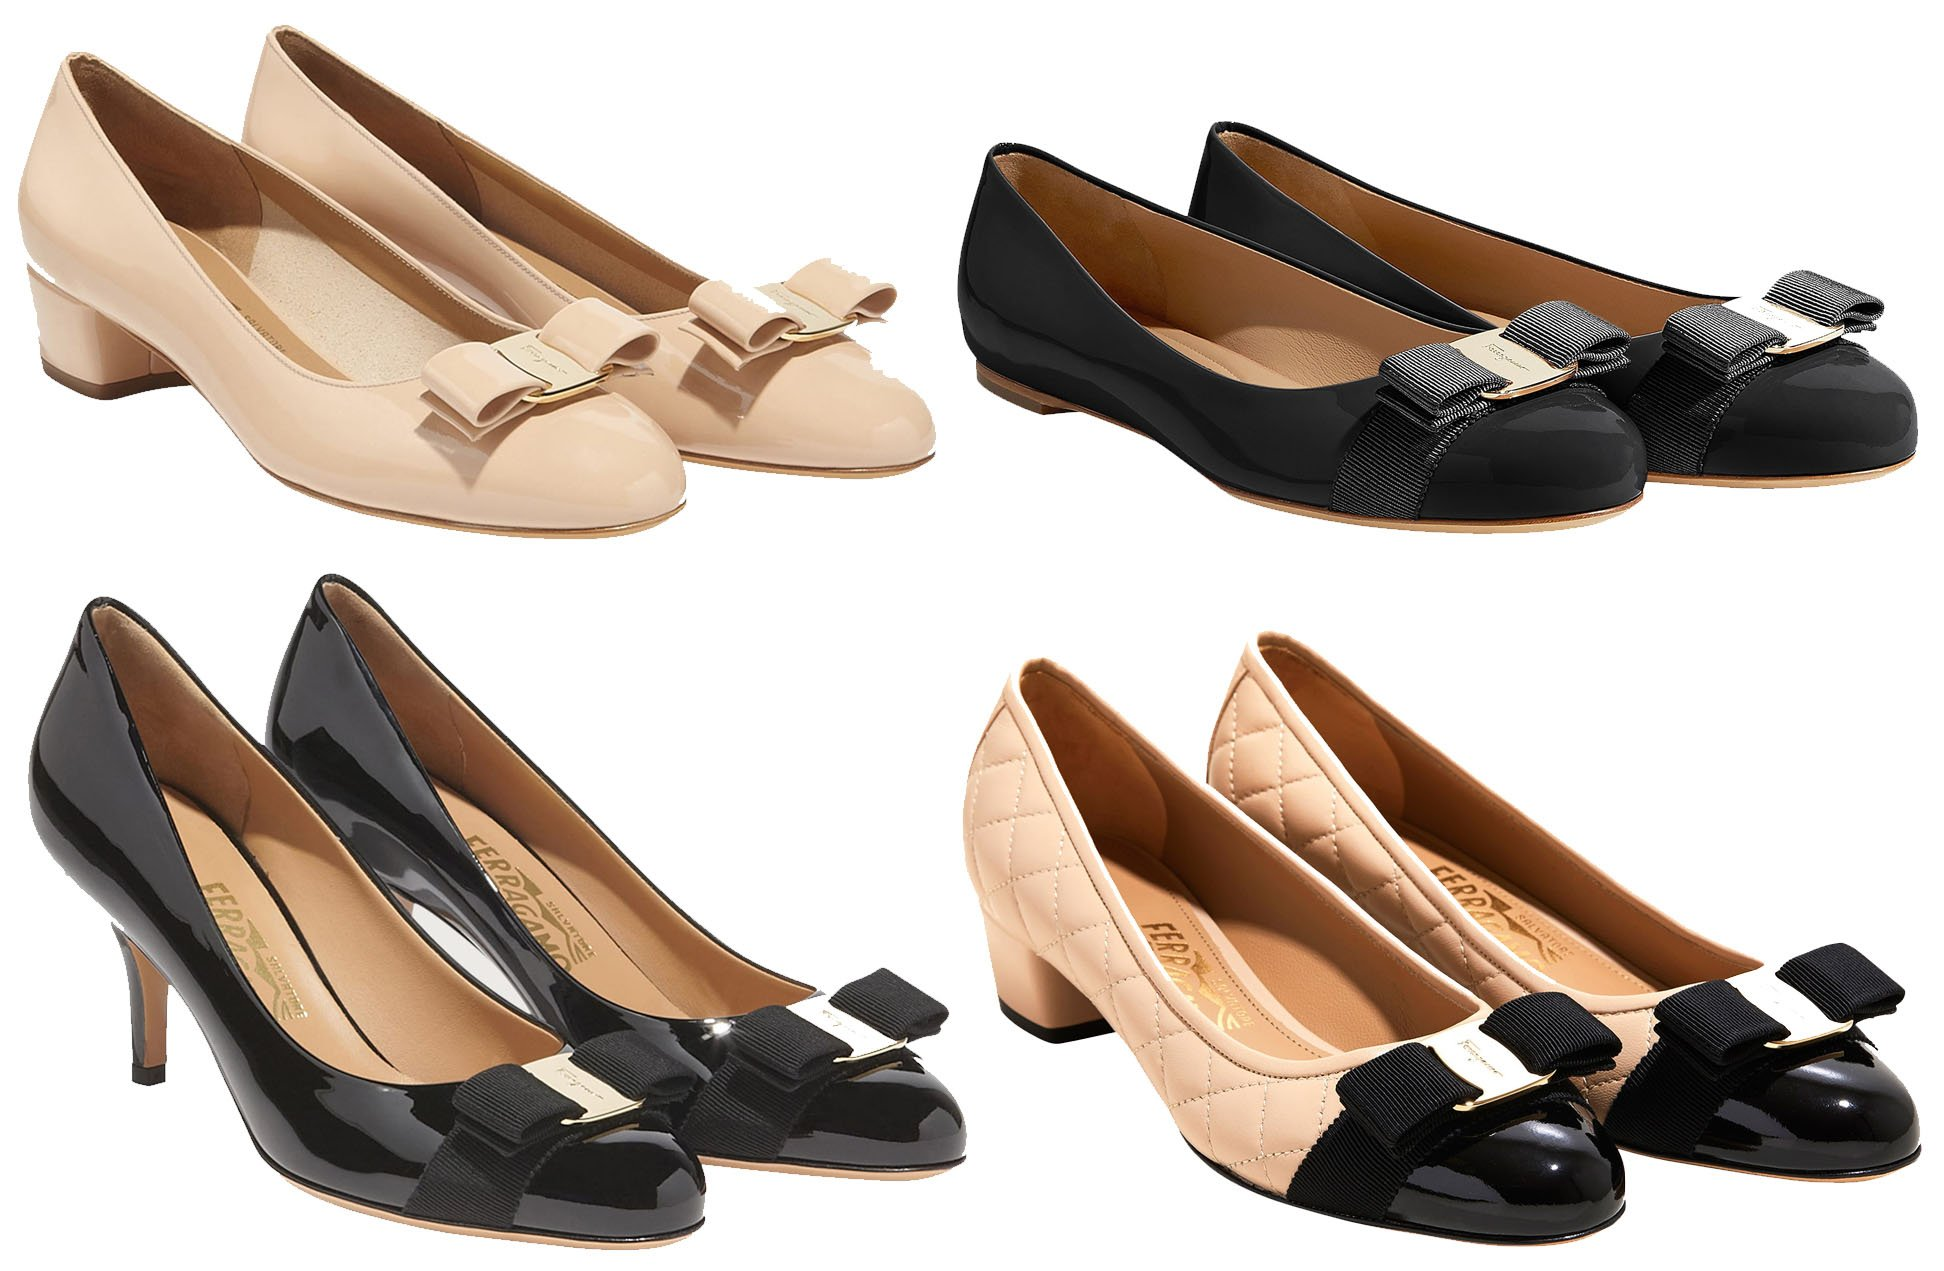 Salvatore Ferragamo's most iconic style is the Vara, which comes in different silhouettes and materials